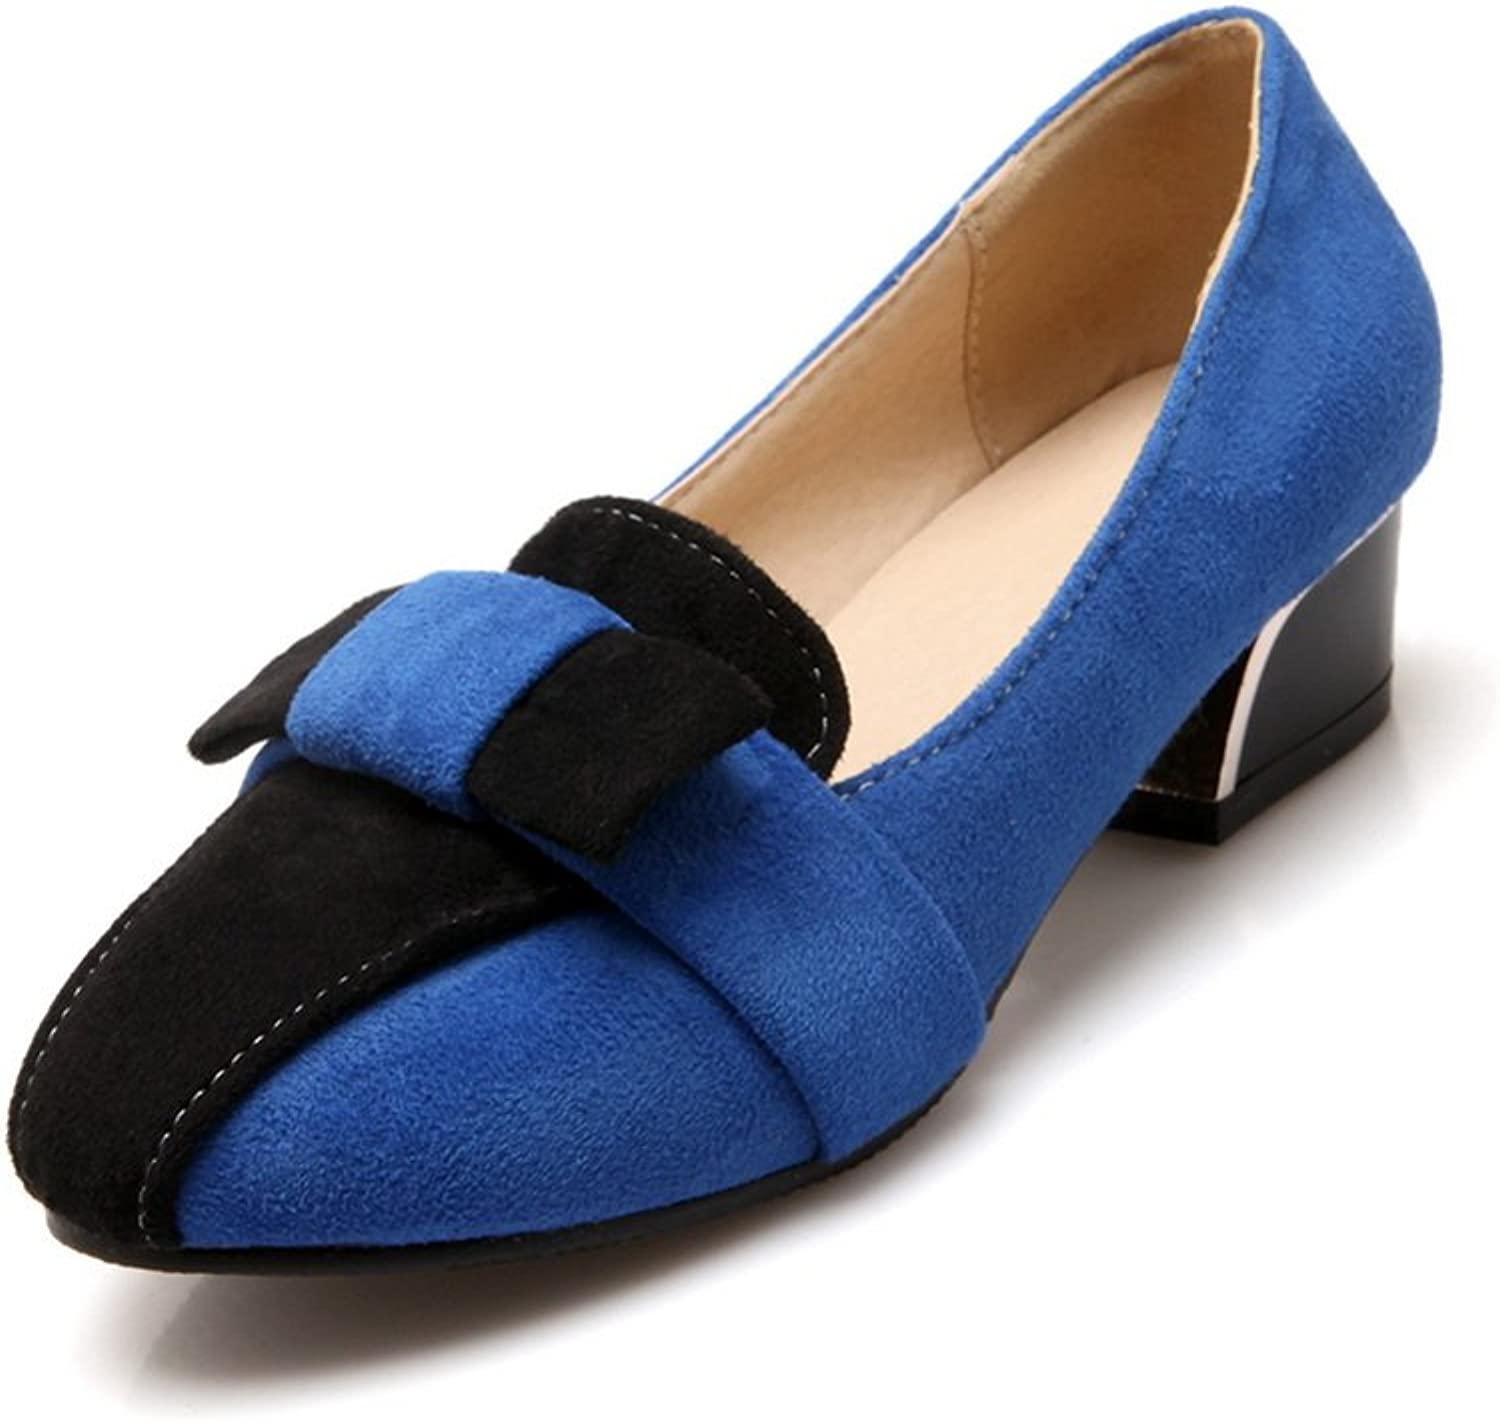 BalaMasa Ladies Bows Two-Toned Chunky Heels Suede Pumps-shoes